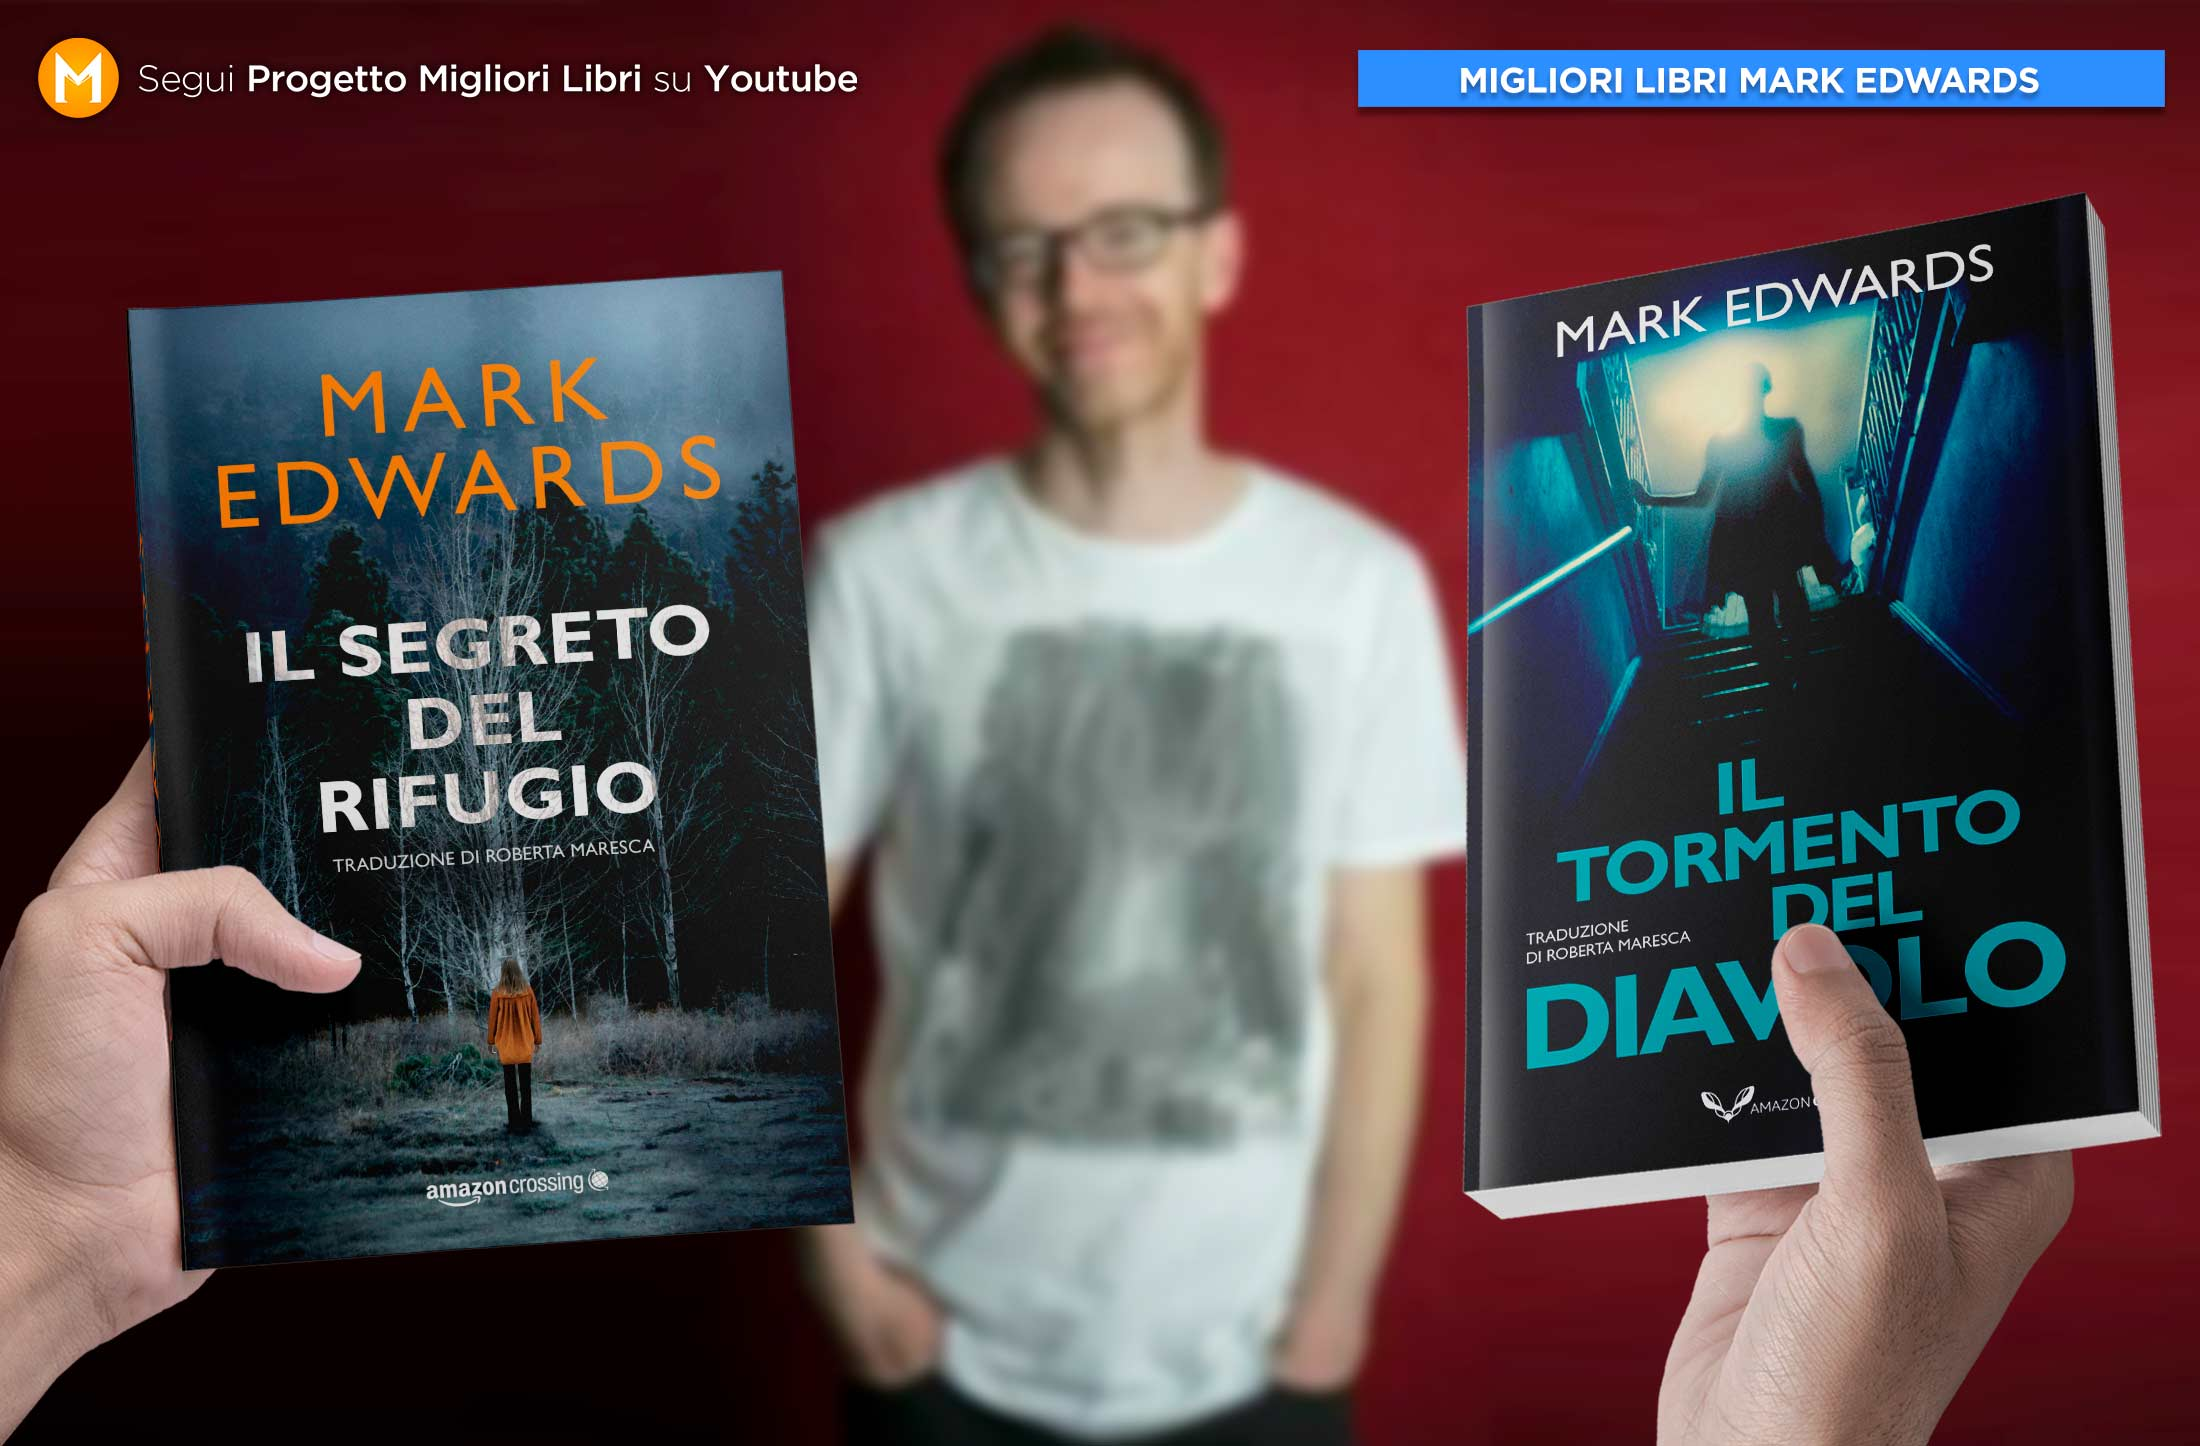 migliori-libri-mark-edwards